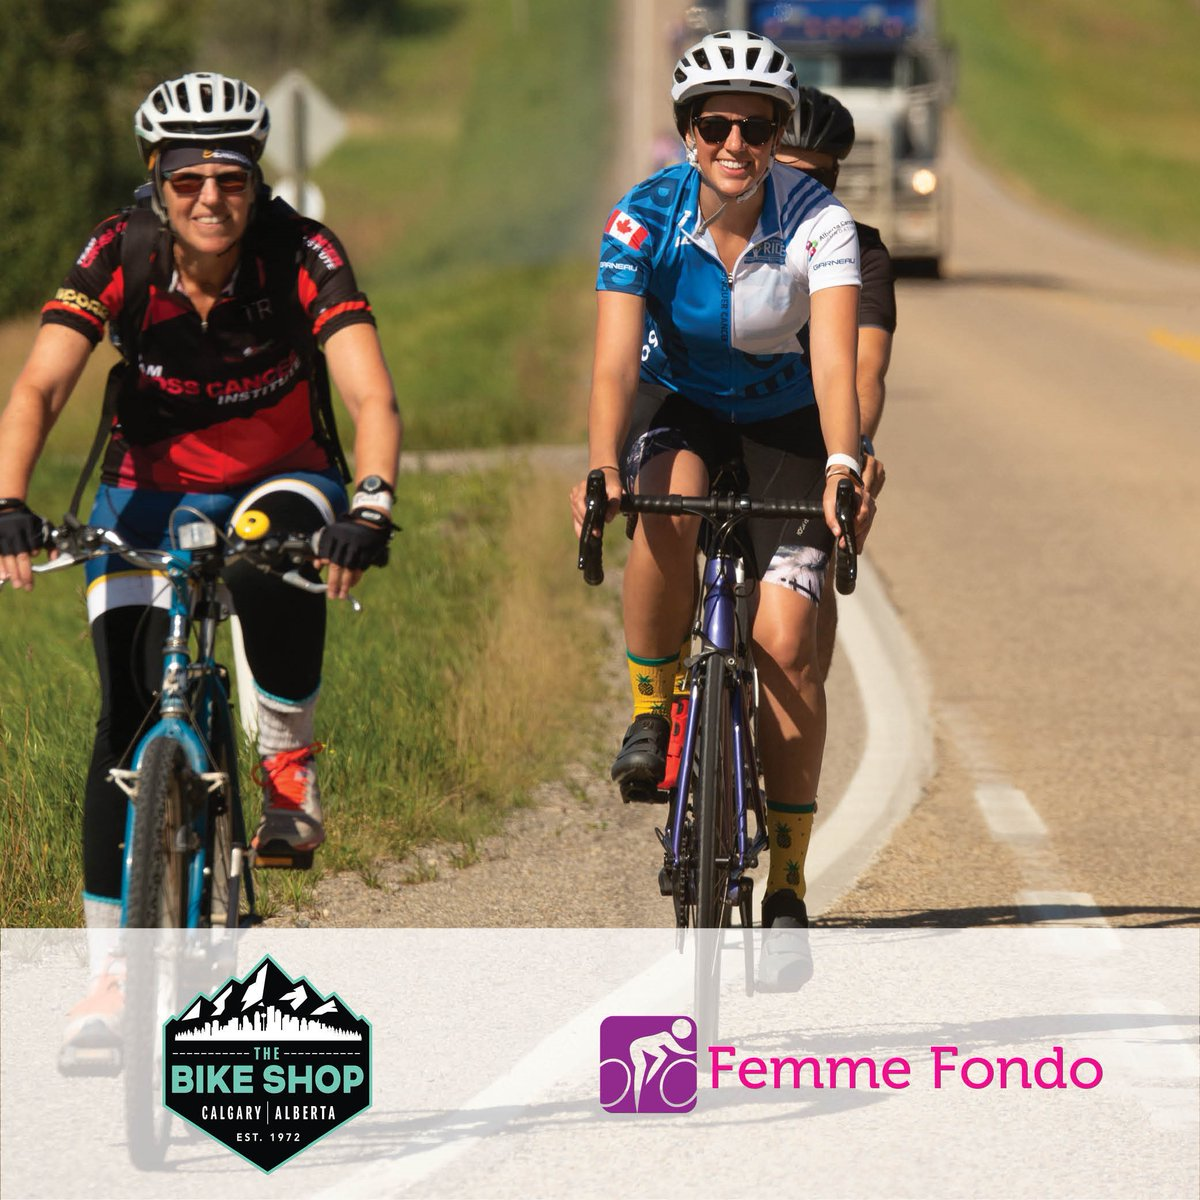 This #InternationalWomensDay, we are excited to launch Femme Fondo! An initiative that aims to connect & support women interested in the @TheAlbertaRide Register for our upcoming event on March 31st in collaboration with @thebikeshopyyc-https://t.co/h91uiicS7z #FemmeFondo https://t.co/T5STMmpnPw